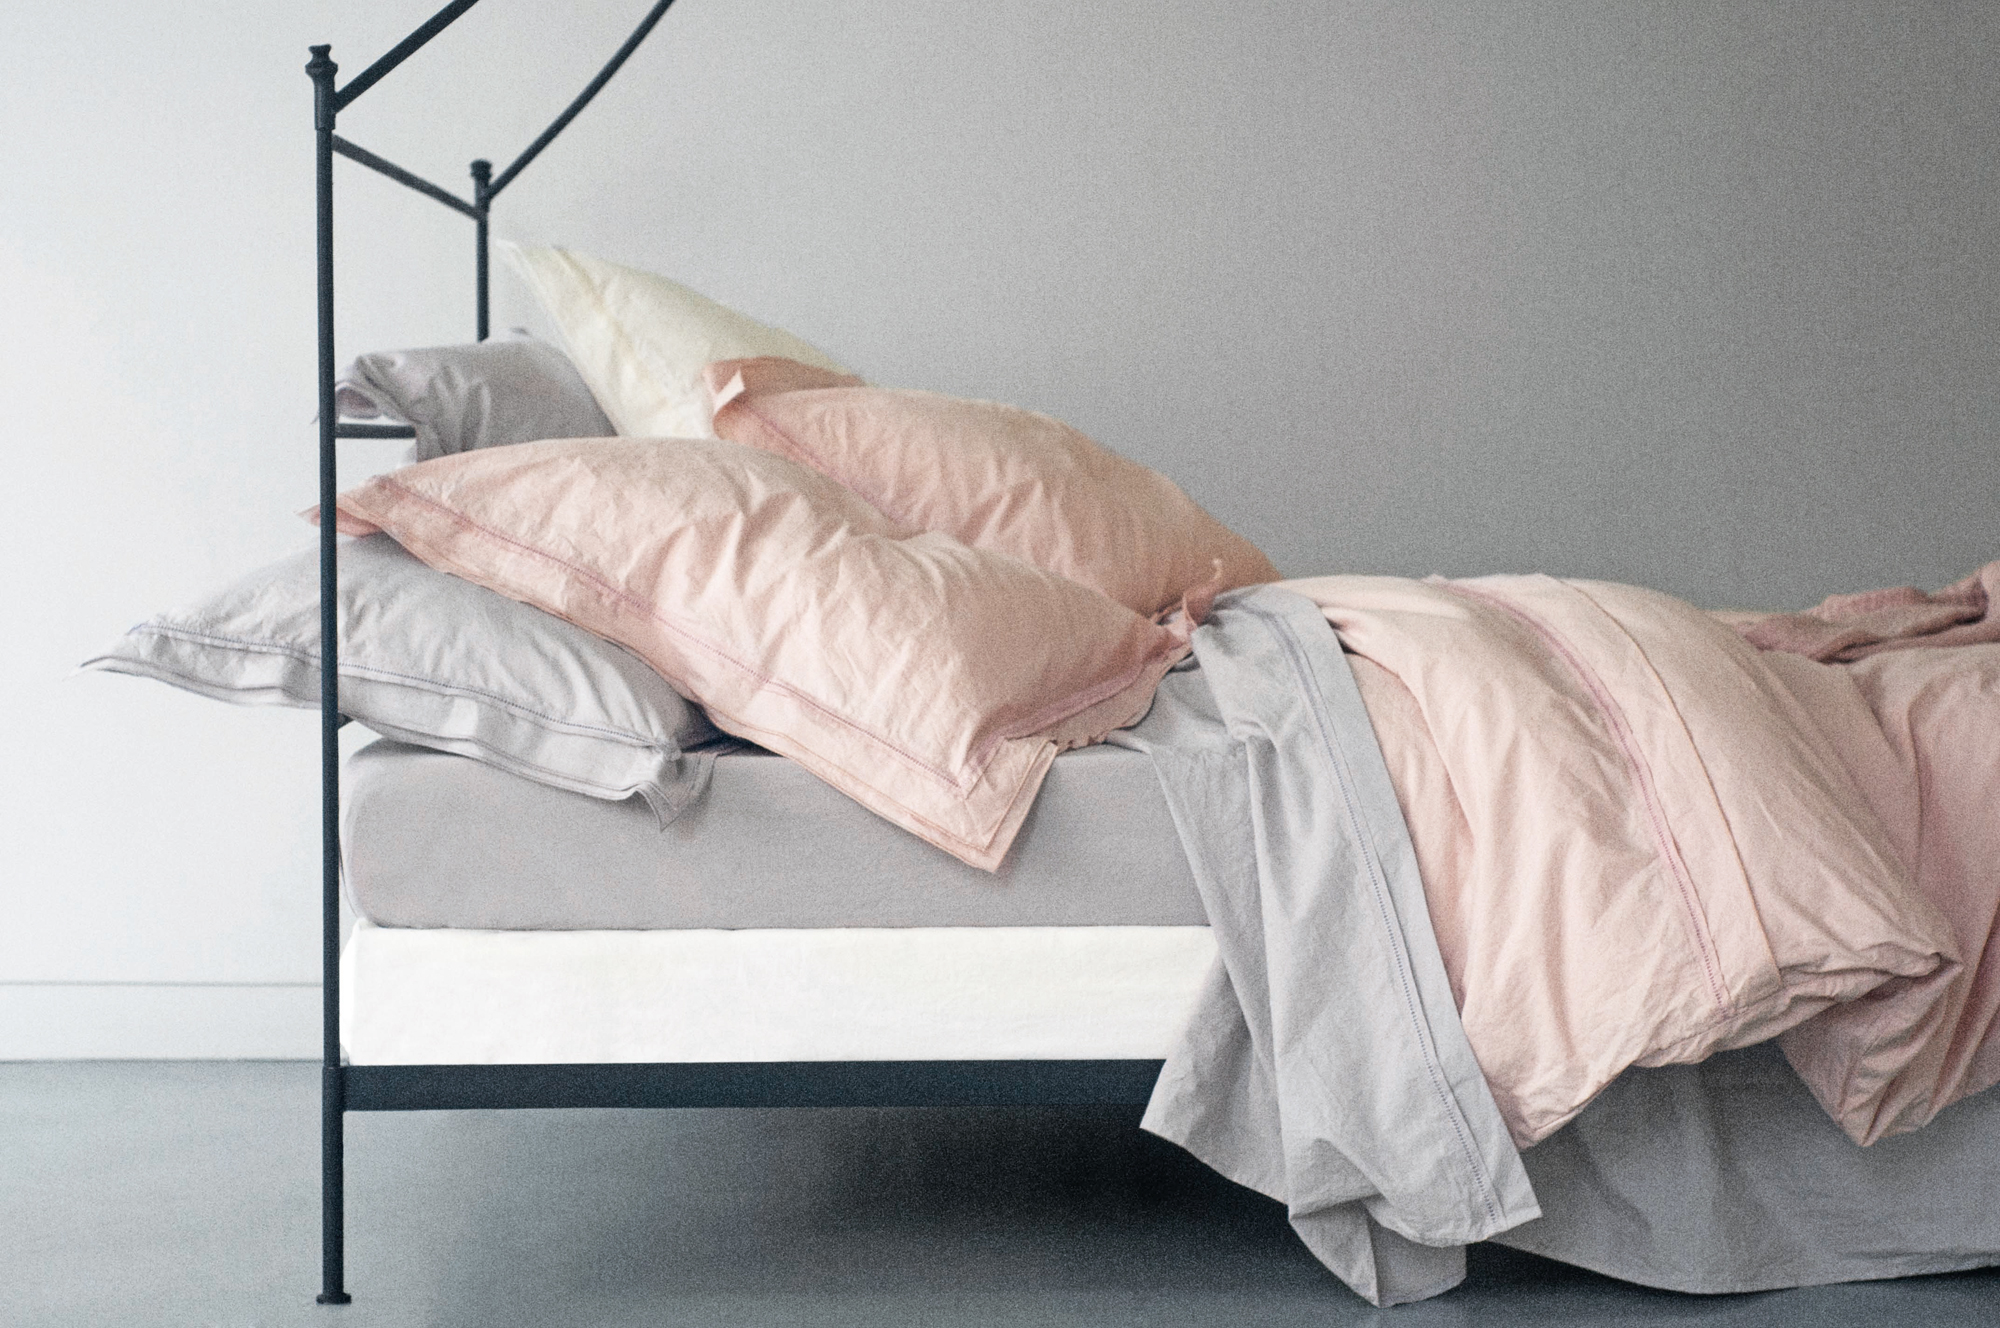 linge de maisons stunning matelas de sol imprim bicolore clover coton with linge de maisons. Black Bedroom Furniture Sets. Home Design Ideas